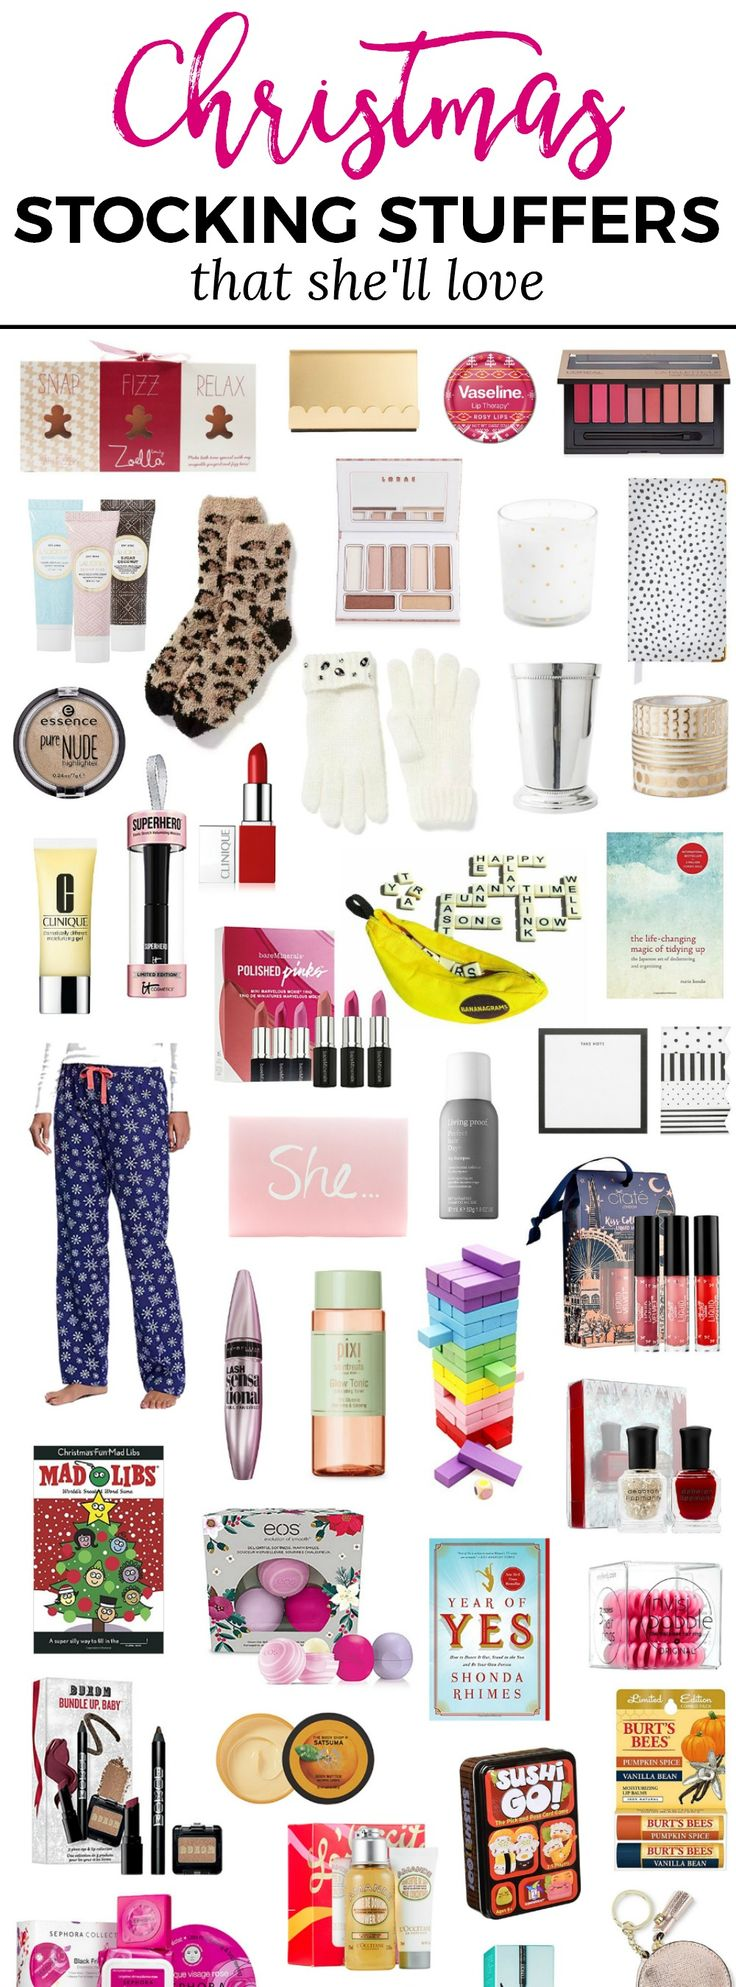 The best Christmas stocking stuffers for women! You won't want to miss this adorable Christmas gift guide for women created by Florida beauty and fashion blogger Ashley Brooke Nicholas. She's guaranteed to love every affordable Christmas gift idea on this list! Stocking stuffers, gift ideas, Christmas gifts, gifts for women, stocking fillers